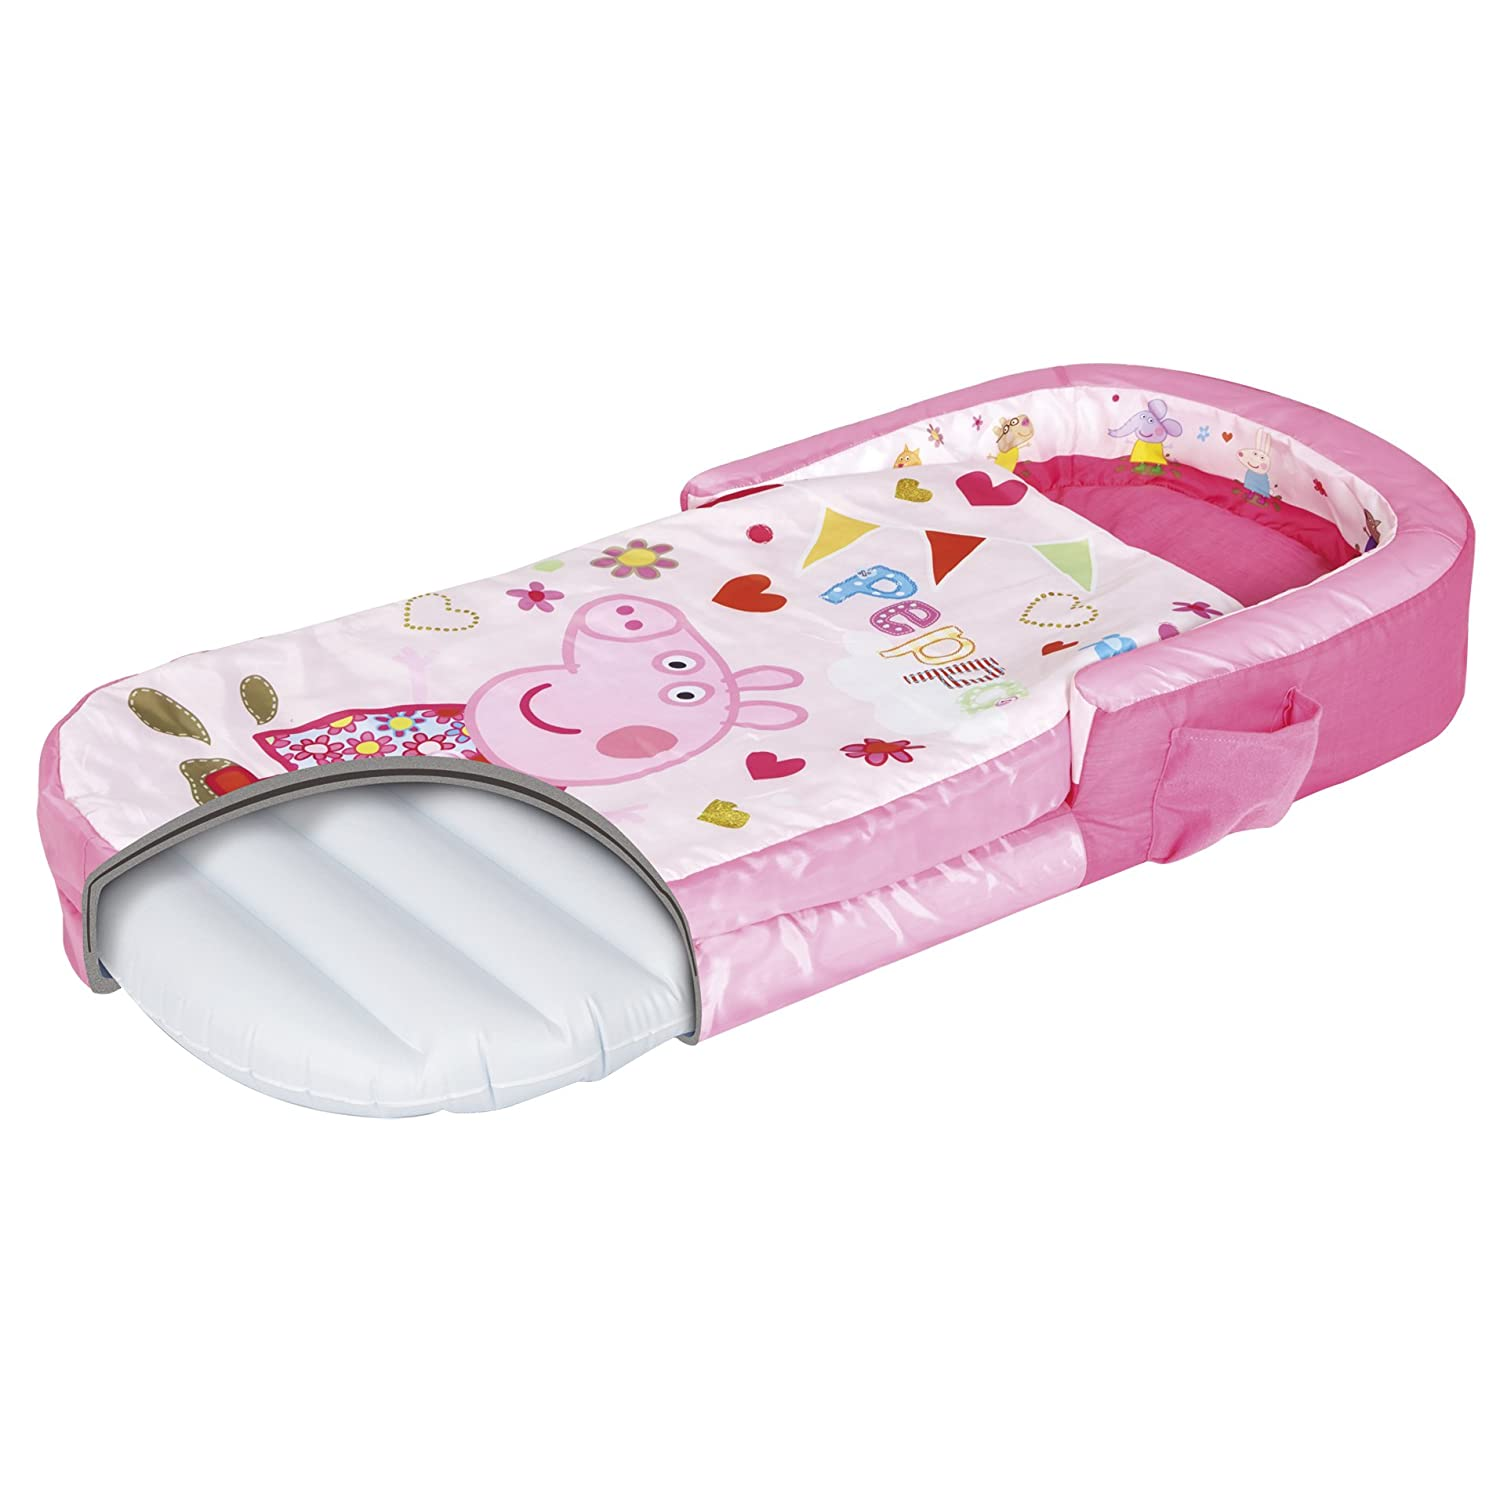 Readybed Readybed Readybed Peppa Pig My First, Polyester-, Mehrfarbig, 130 x 61 x 23 cm 73c2b7